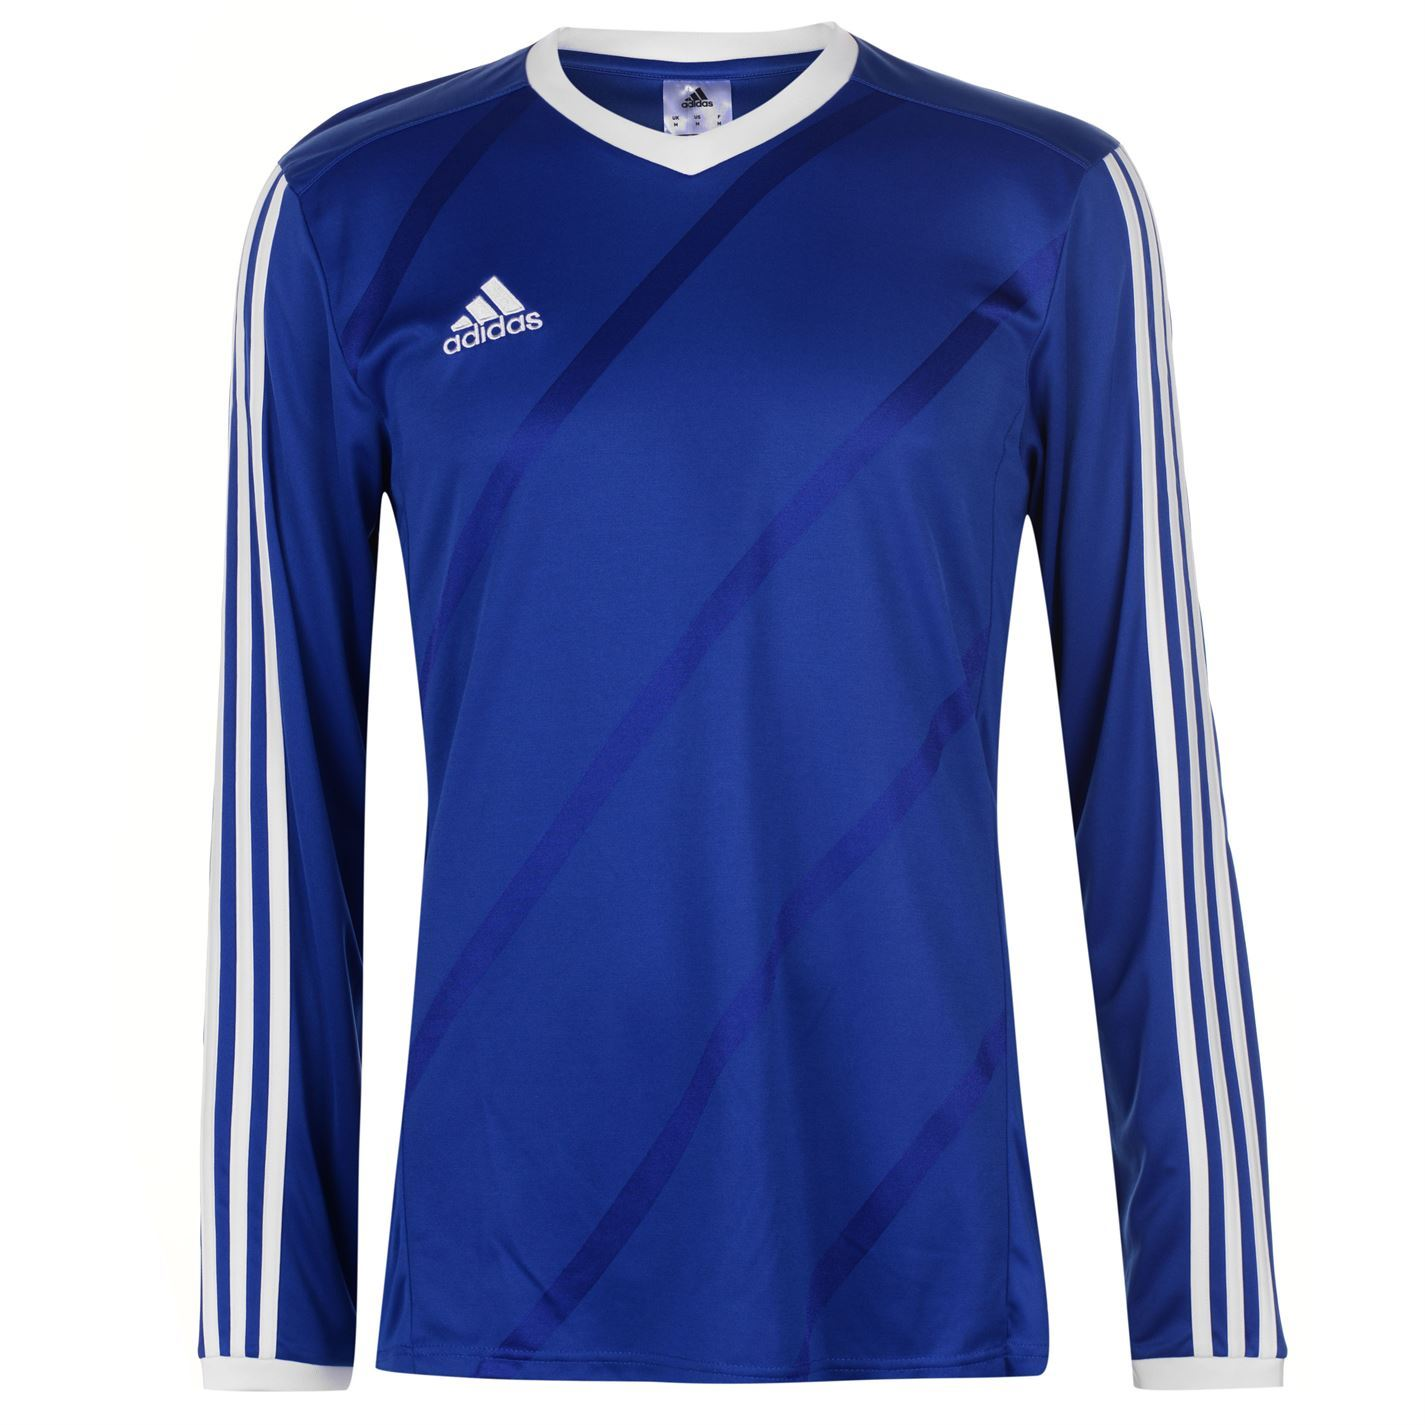 quality design 6423a e2539 Details about adidas Tabela 14 Long Sleeve Football Jersey Mens Soccer  Shirt Top T-Shirt